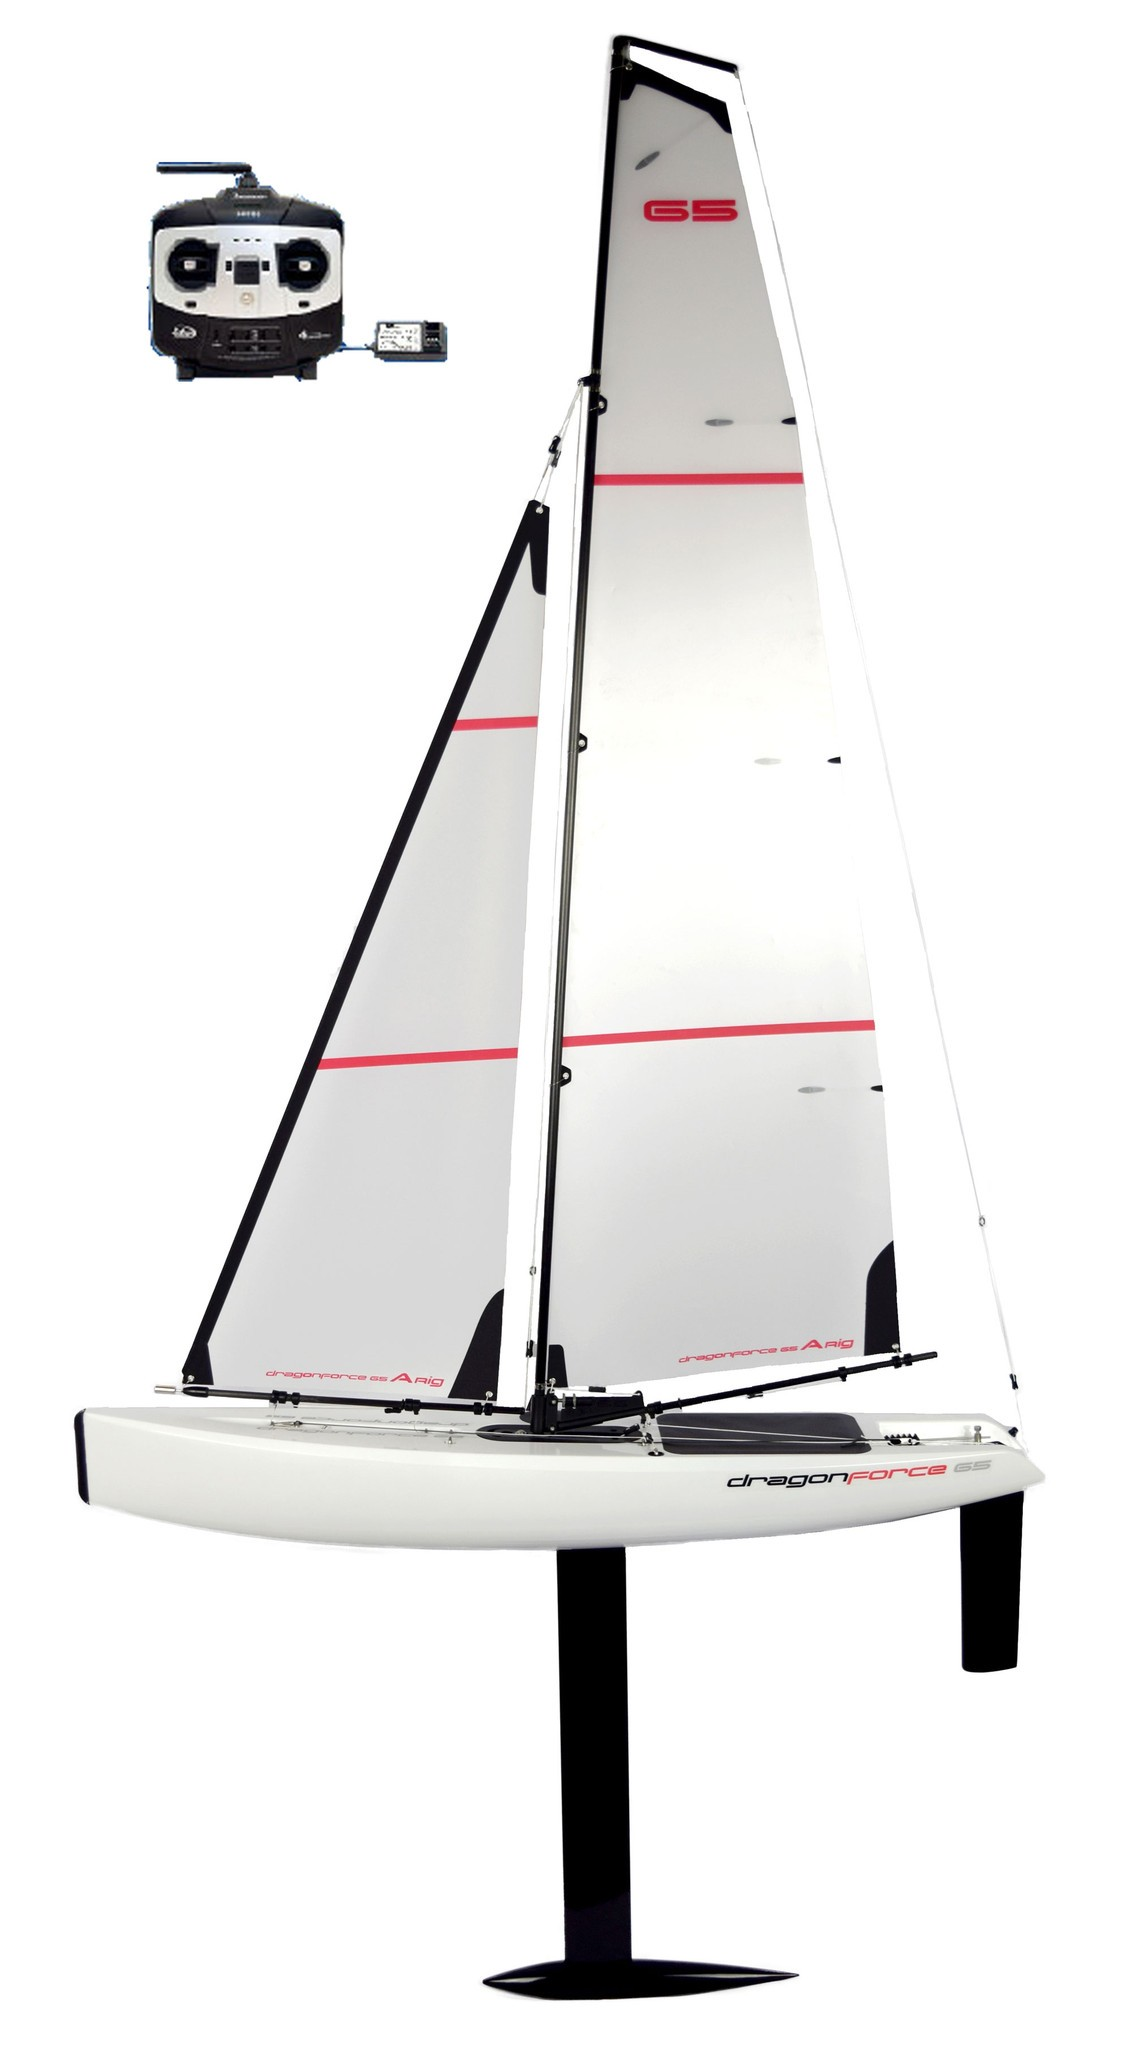 DragonForce 65 2017 Ver. 6 650mm DF65 Class RC Sailboat